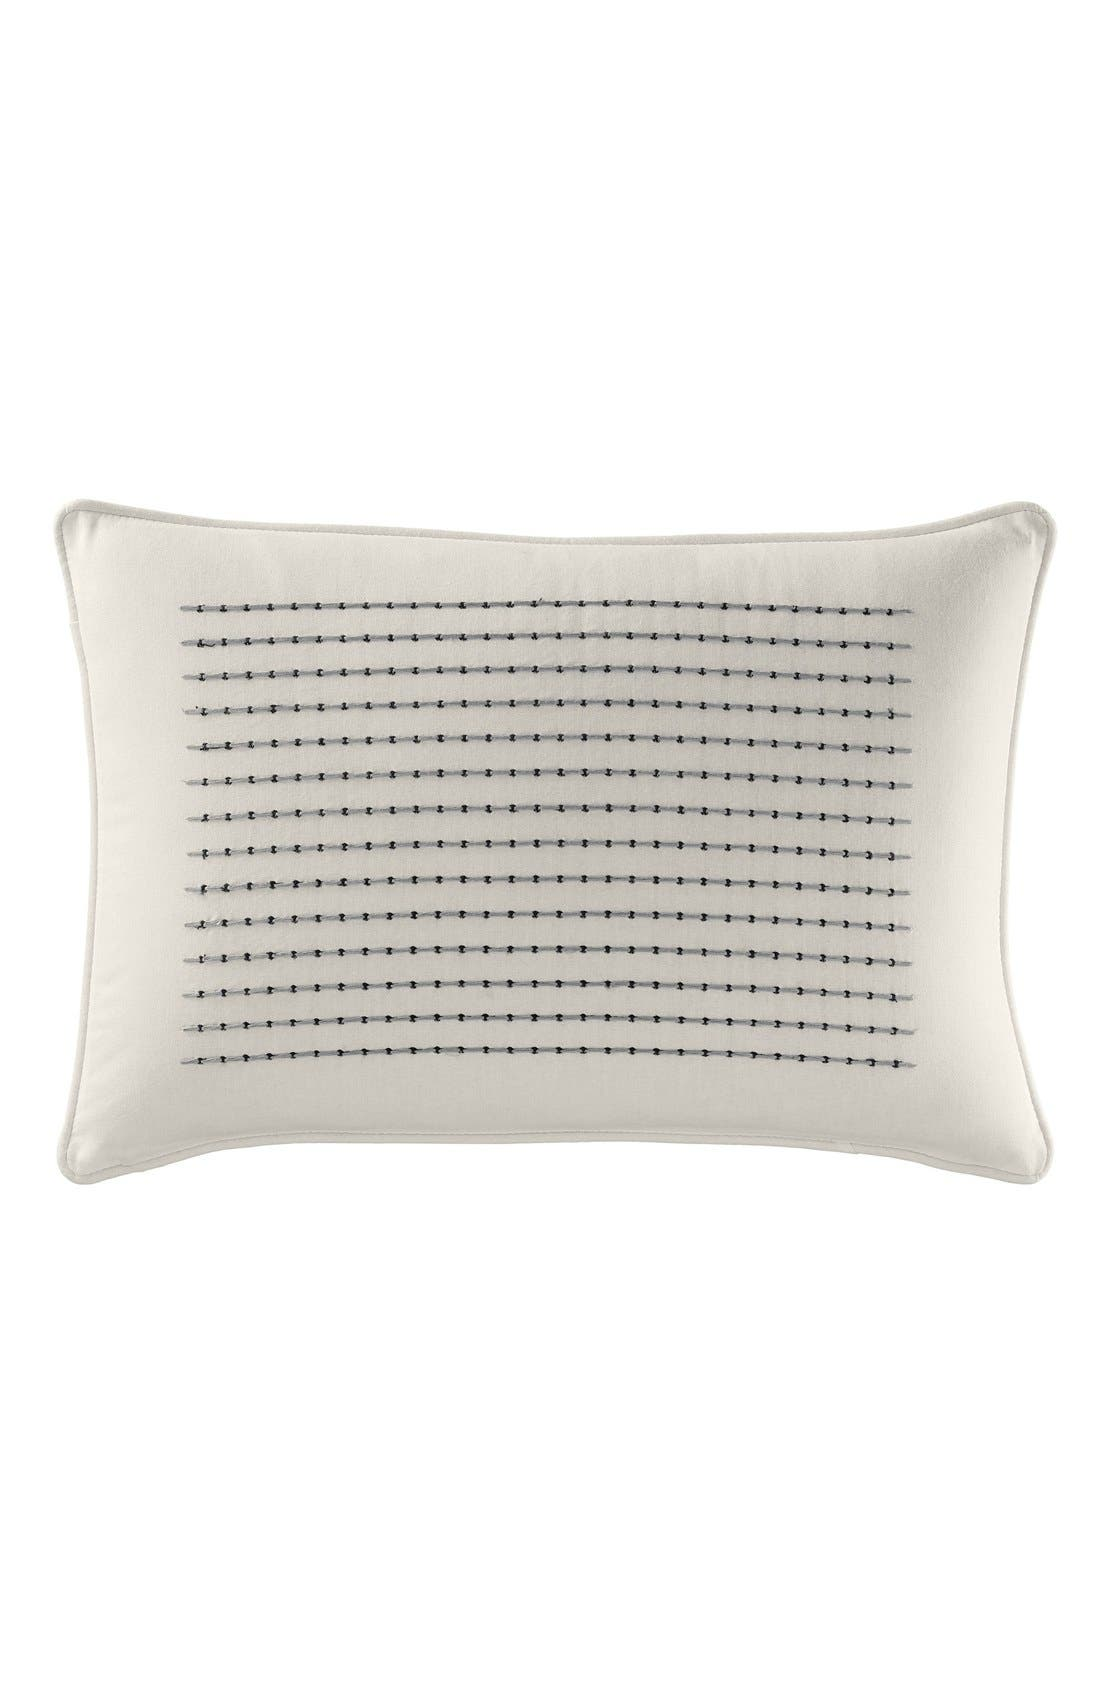 Alternate Image 1 Selected - Nautica Caldwell Embroidered Pillow